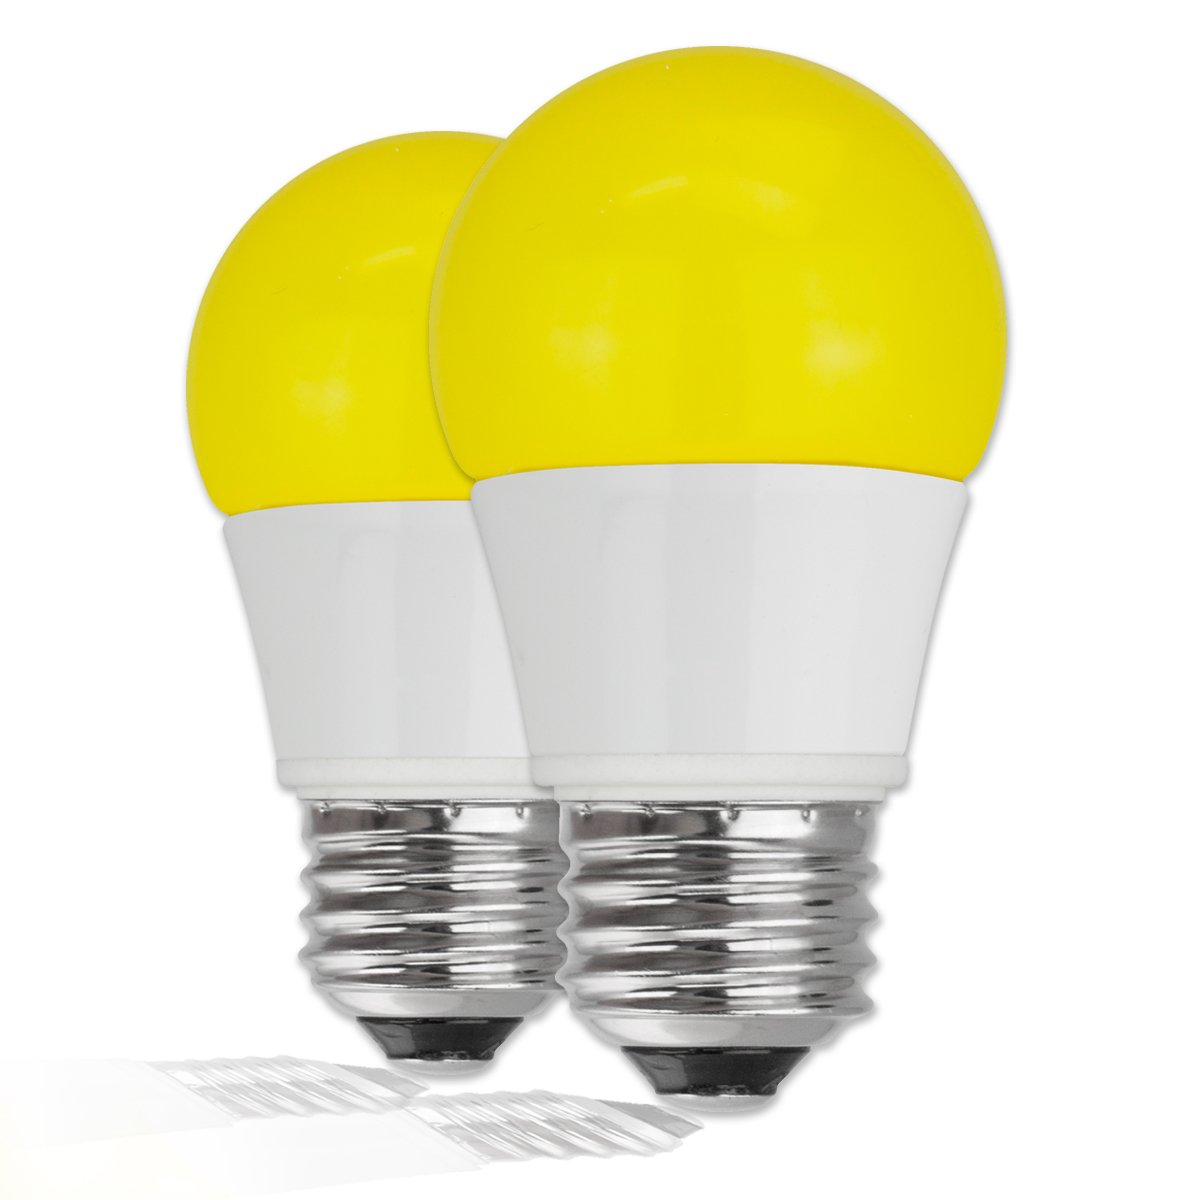 TCP 40 Watt Equivalent, Single-Pack LED Yellow Bug Light Bulbs, Non-Dimmable, RLA155Y: Amazon.in: Home & Kitchen